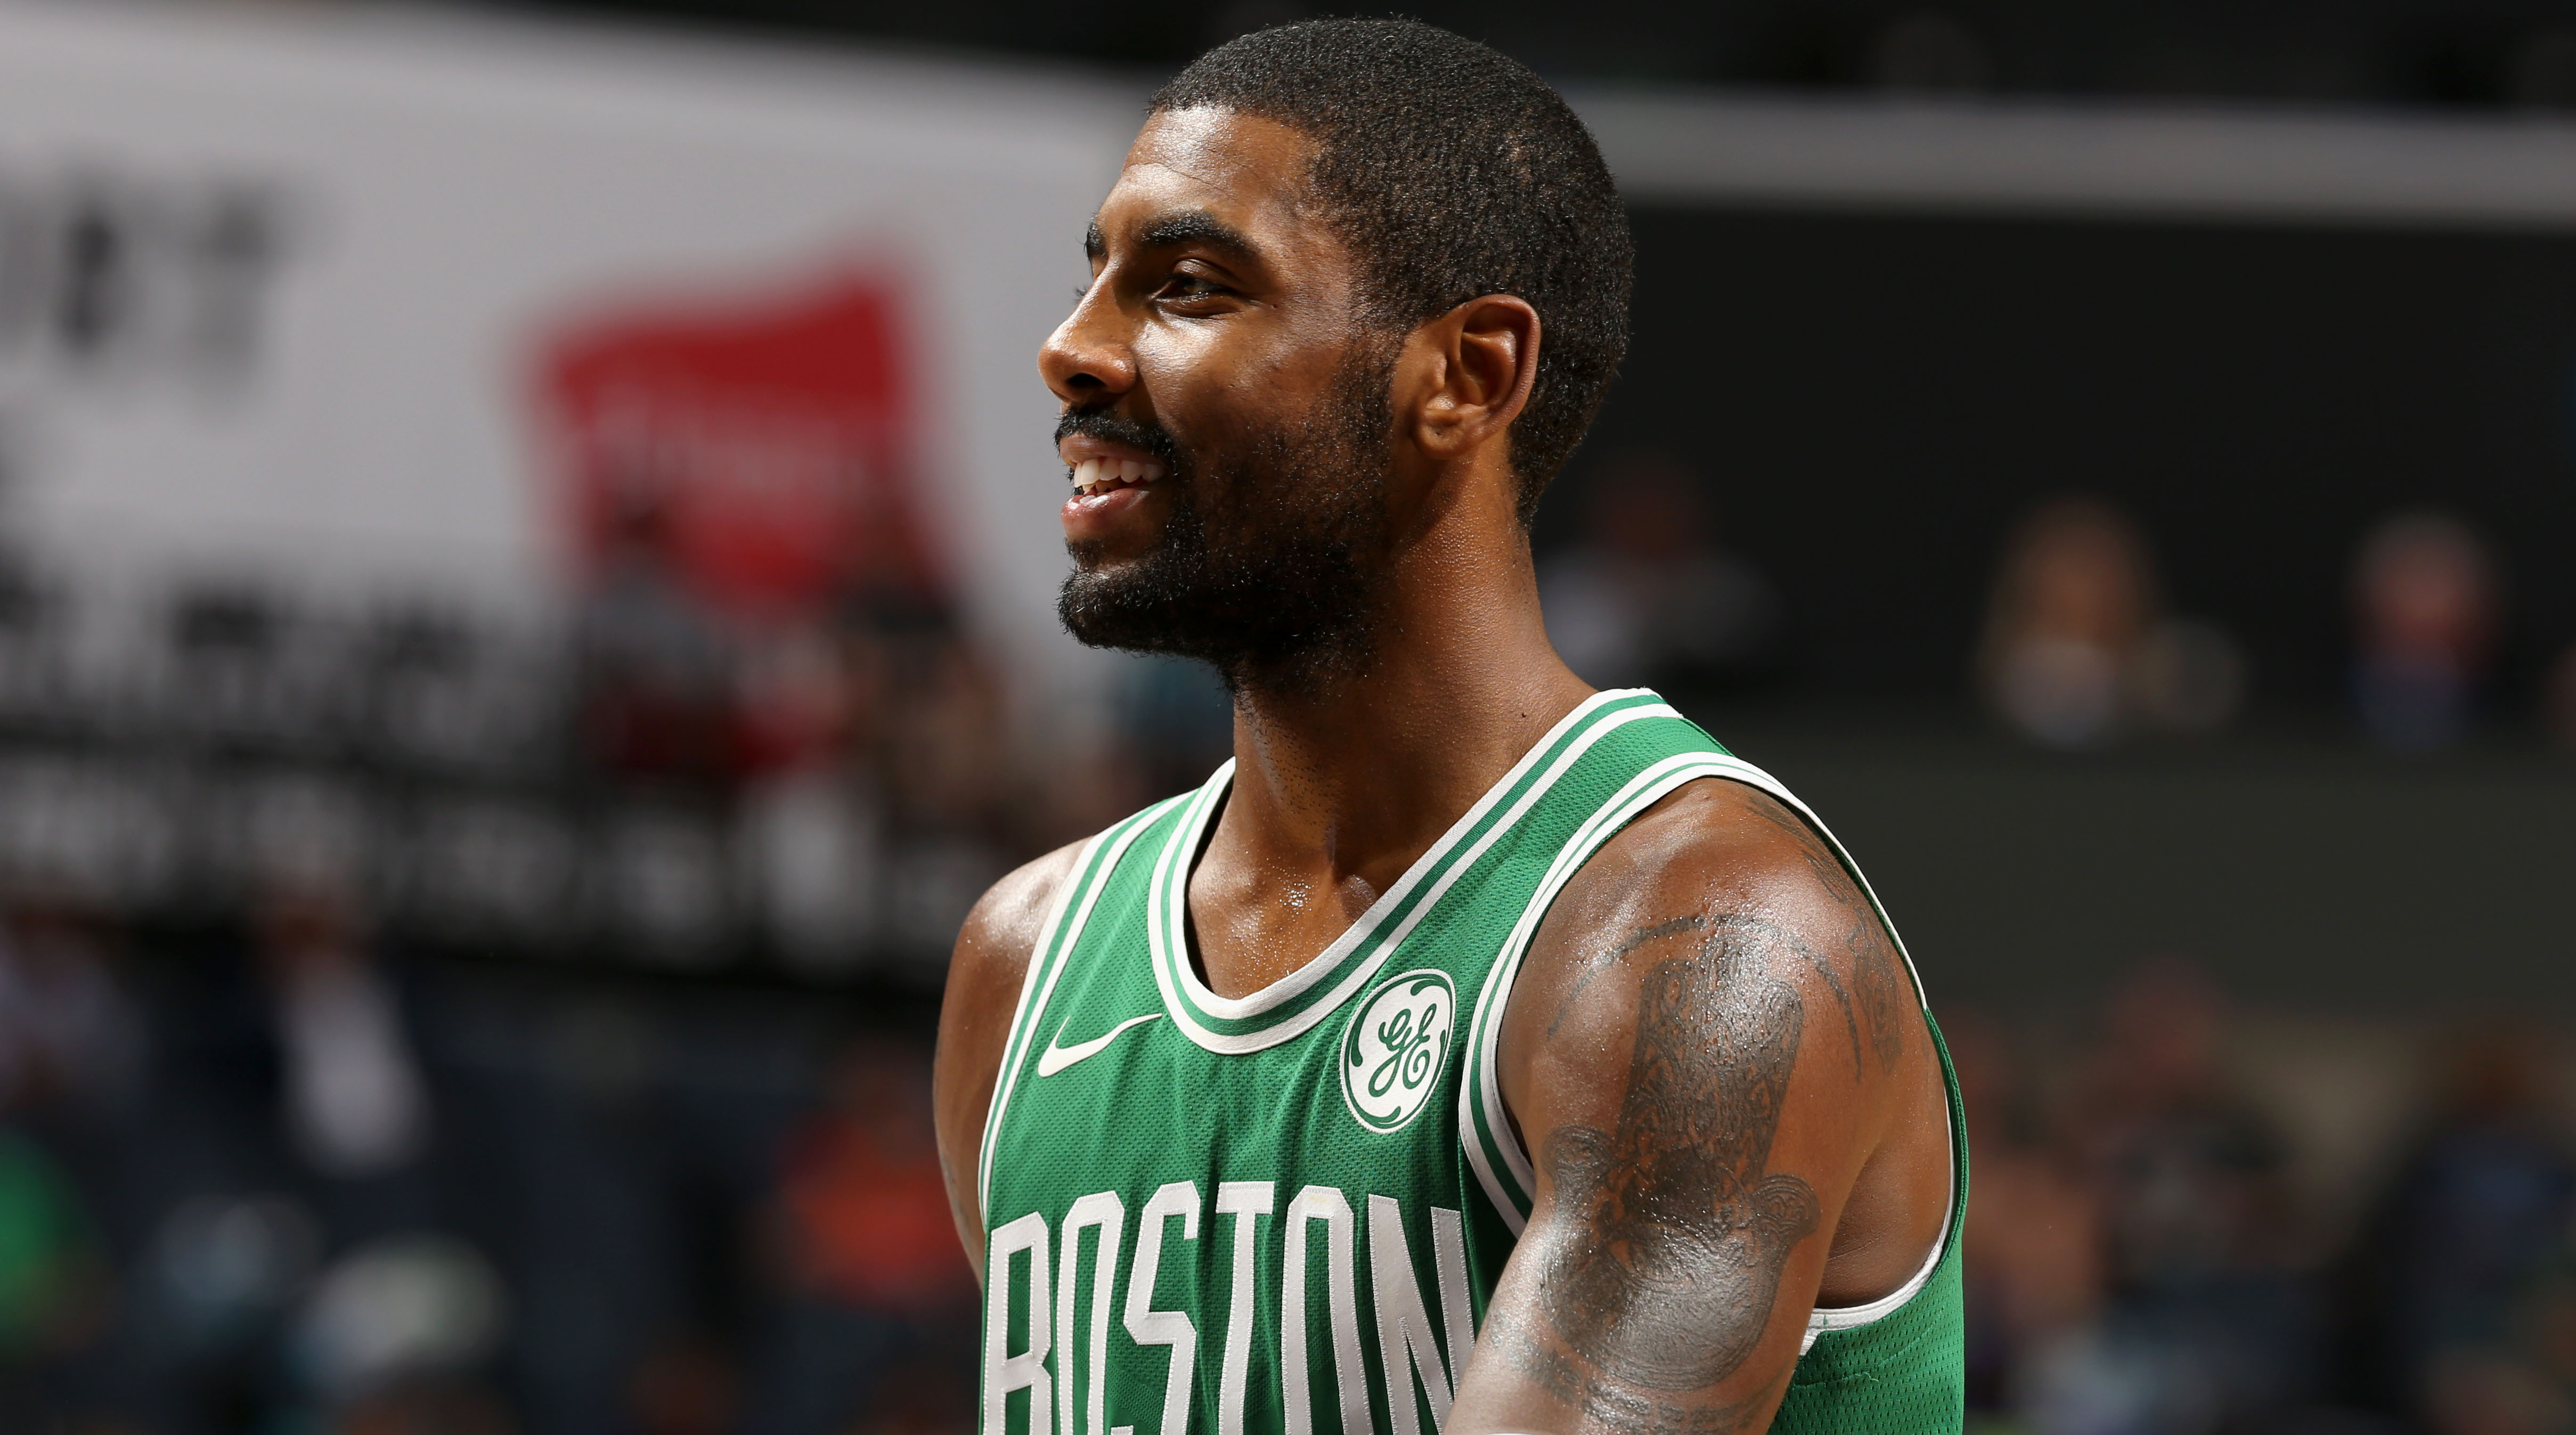 Kyrie Irving compares living in Boston to Cleveland | SI.com